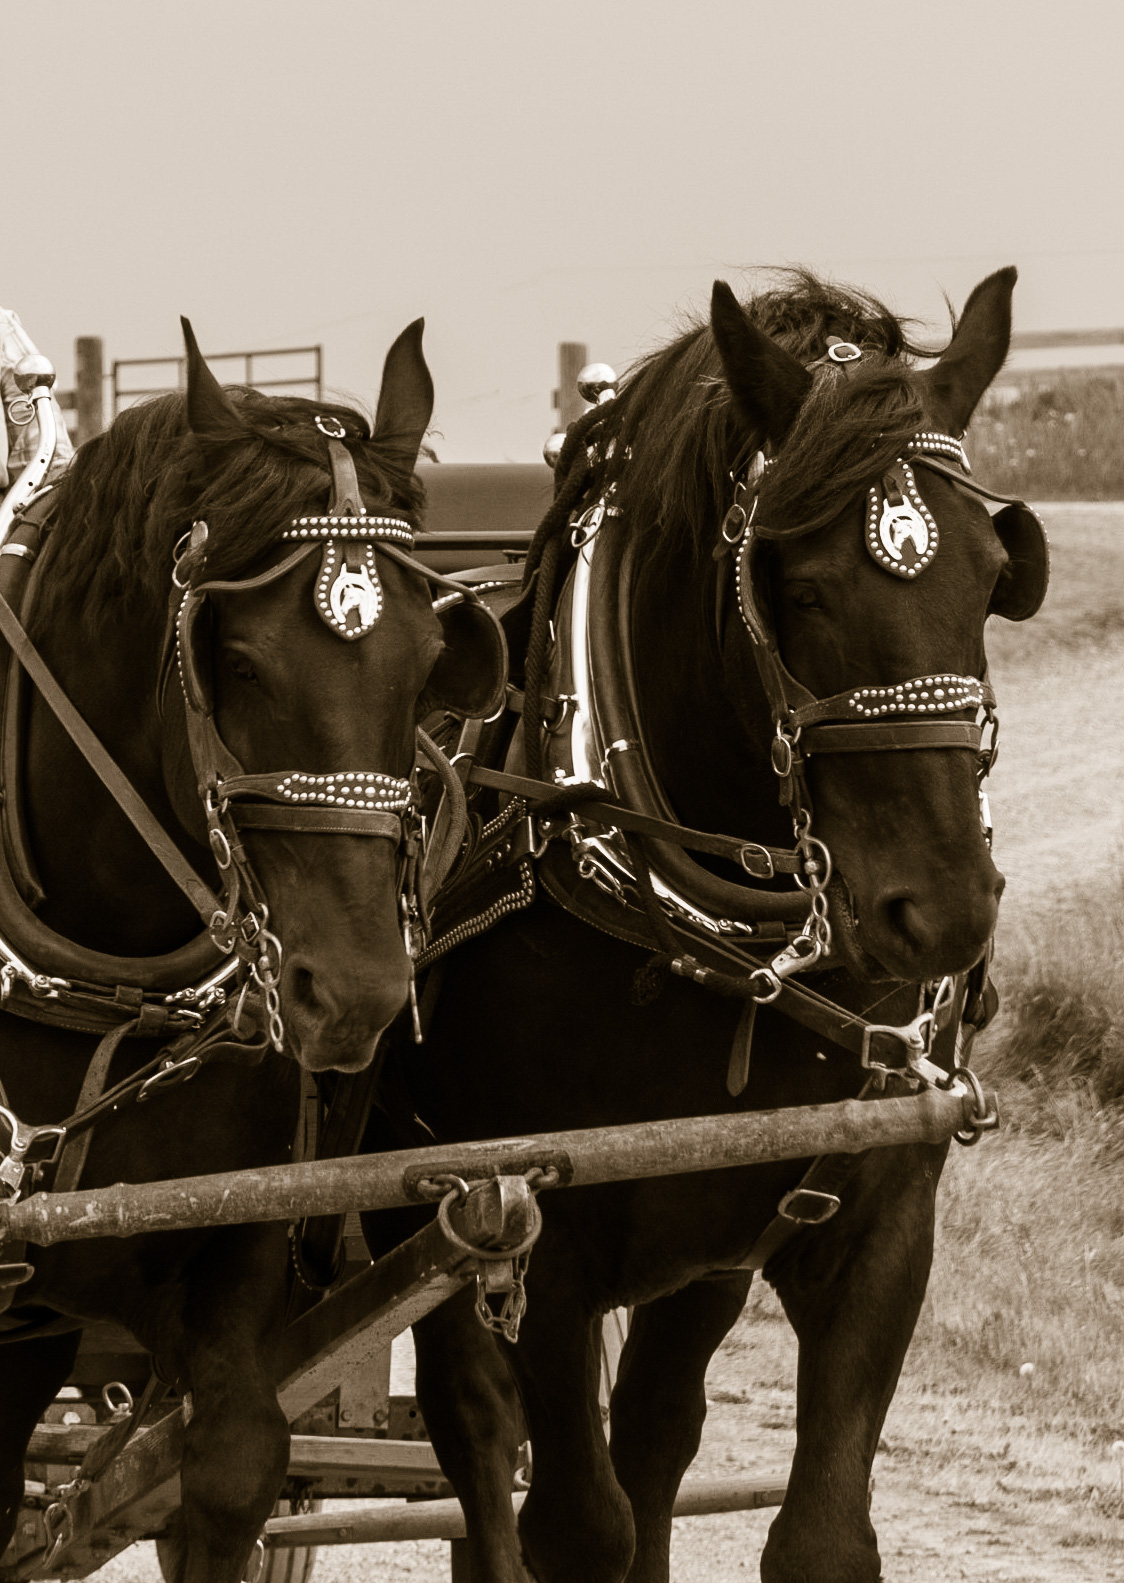 Draft horses at the Bar U Ranch, Alberta